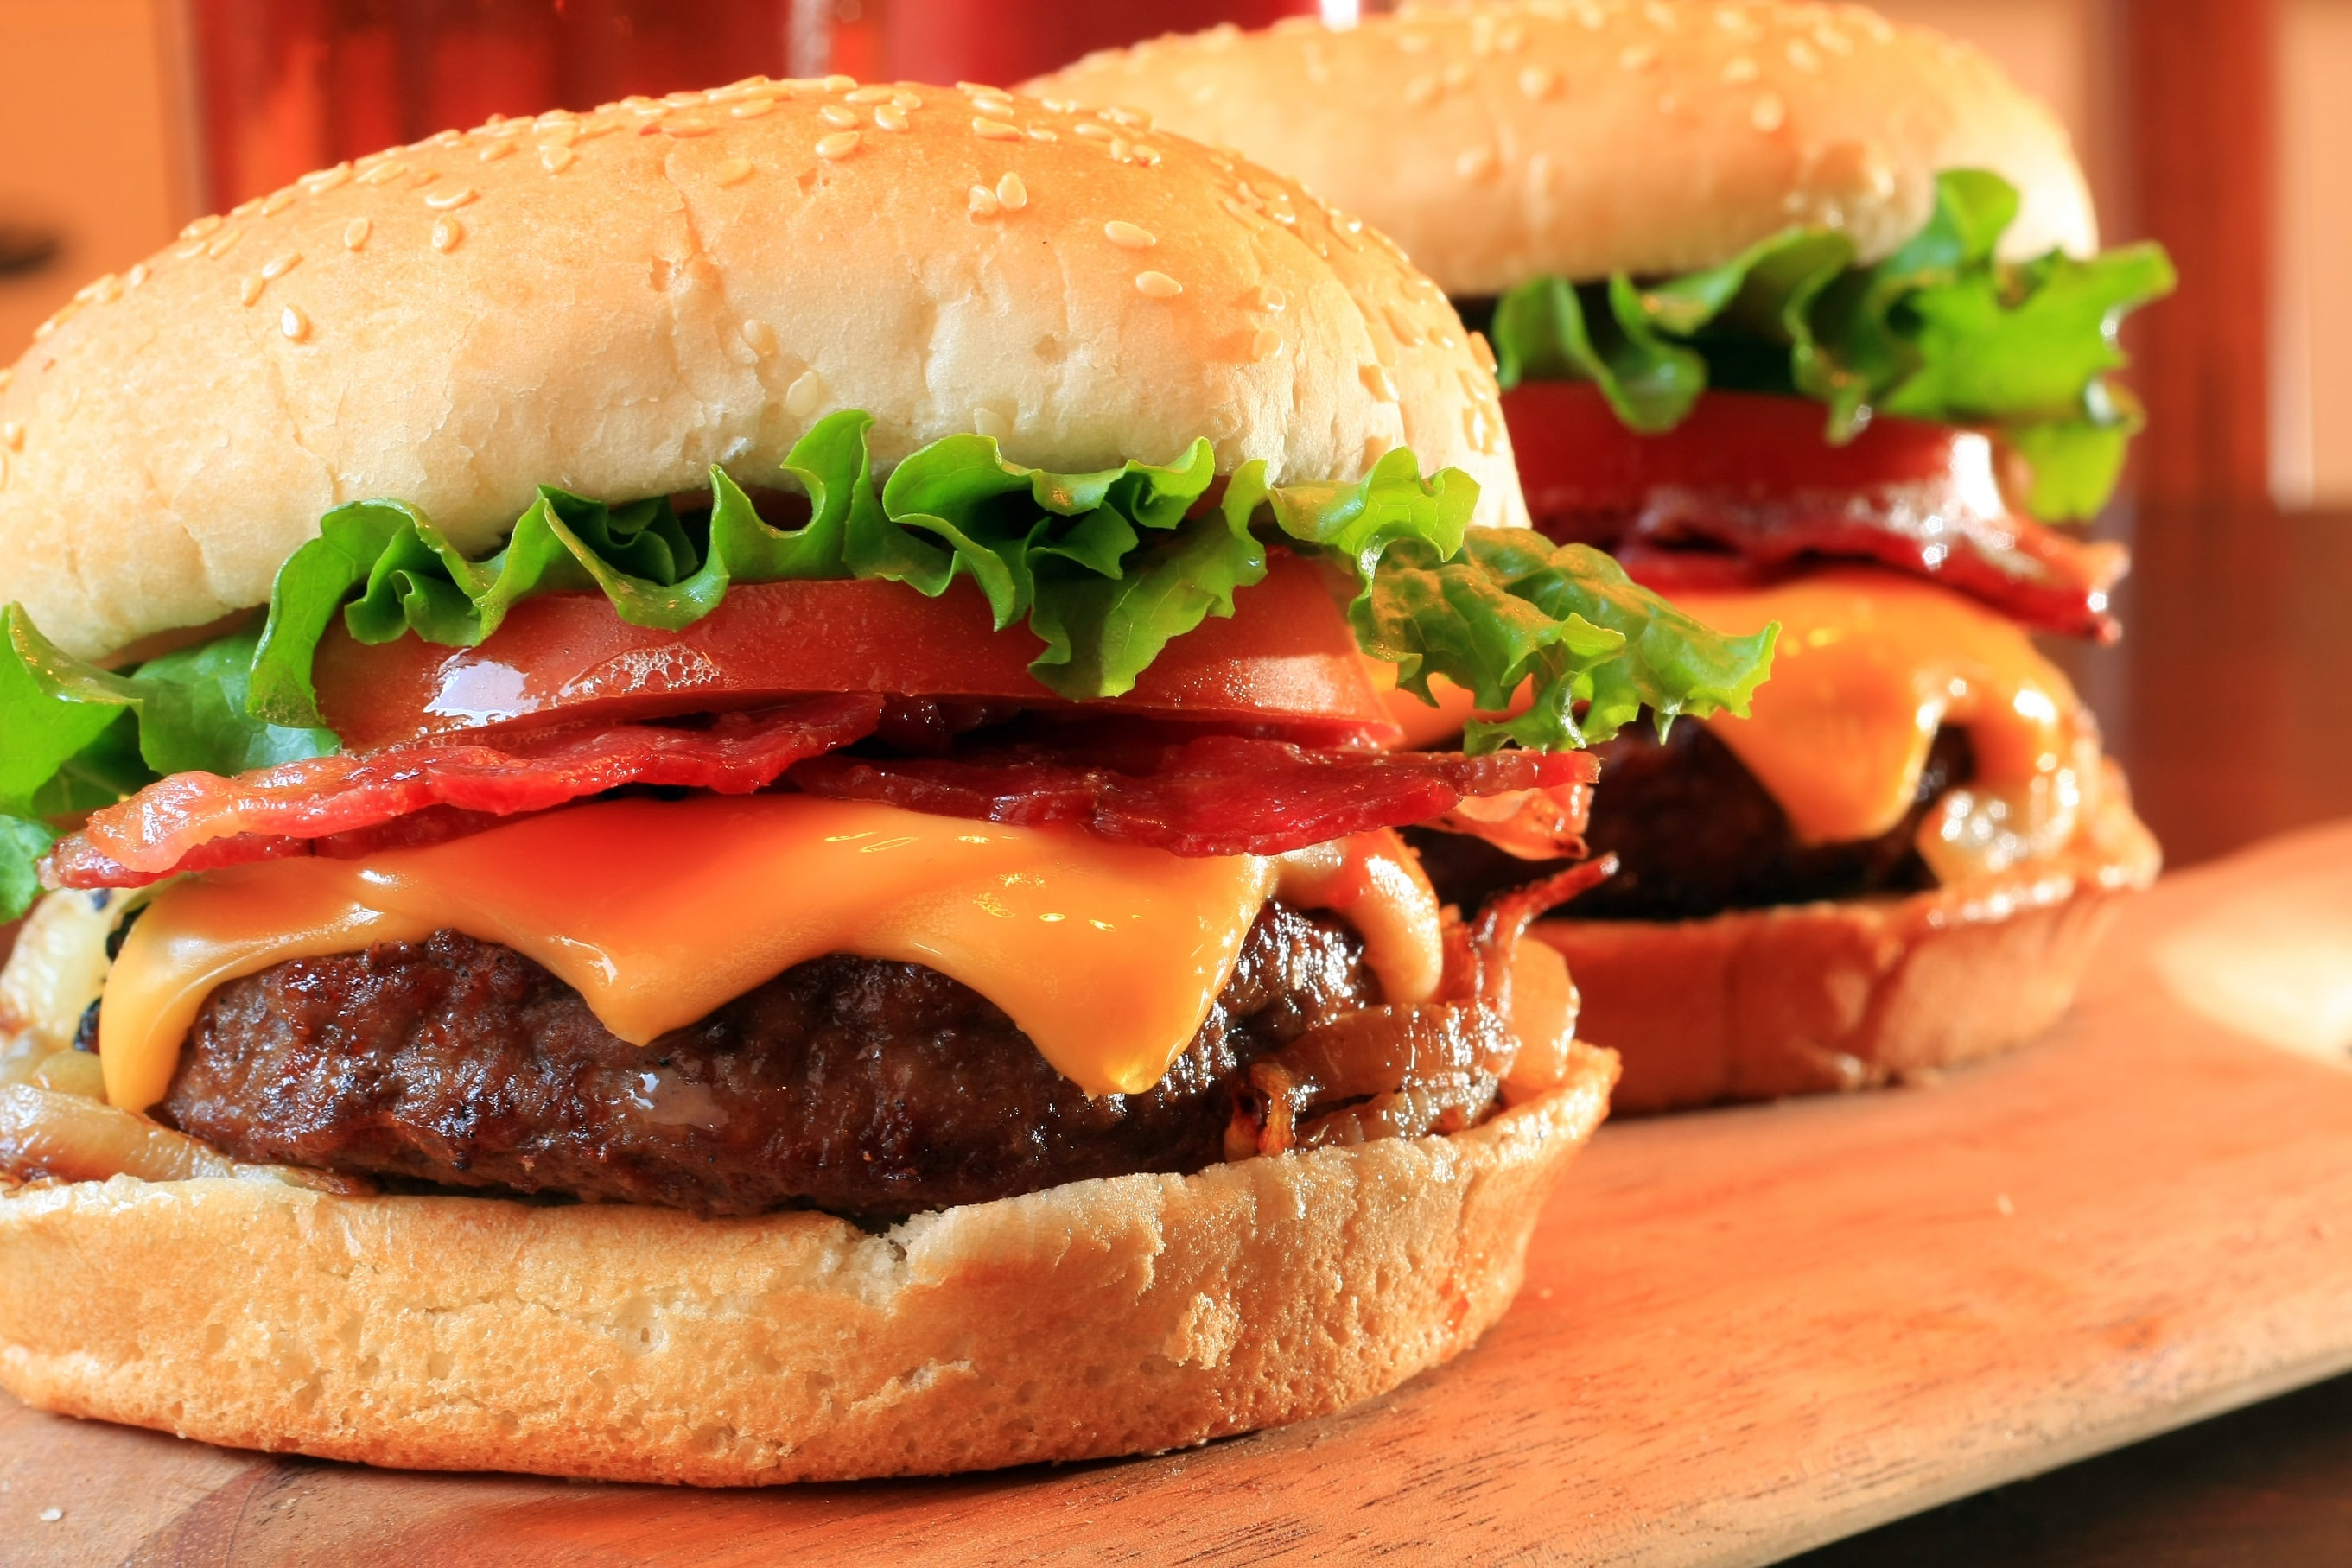 bacon cheeseburgers with lettuce and tomato on seeded buns